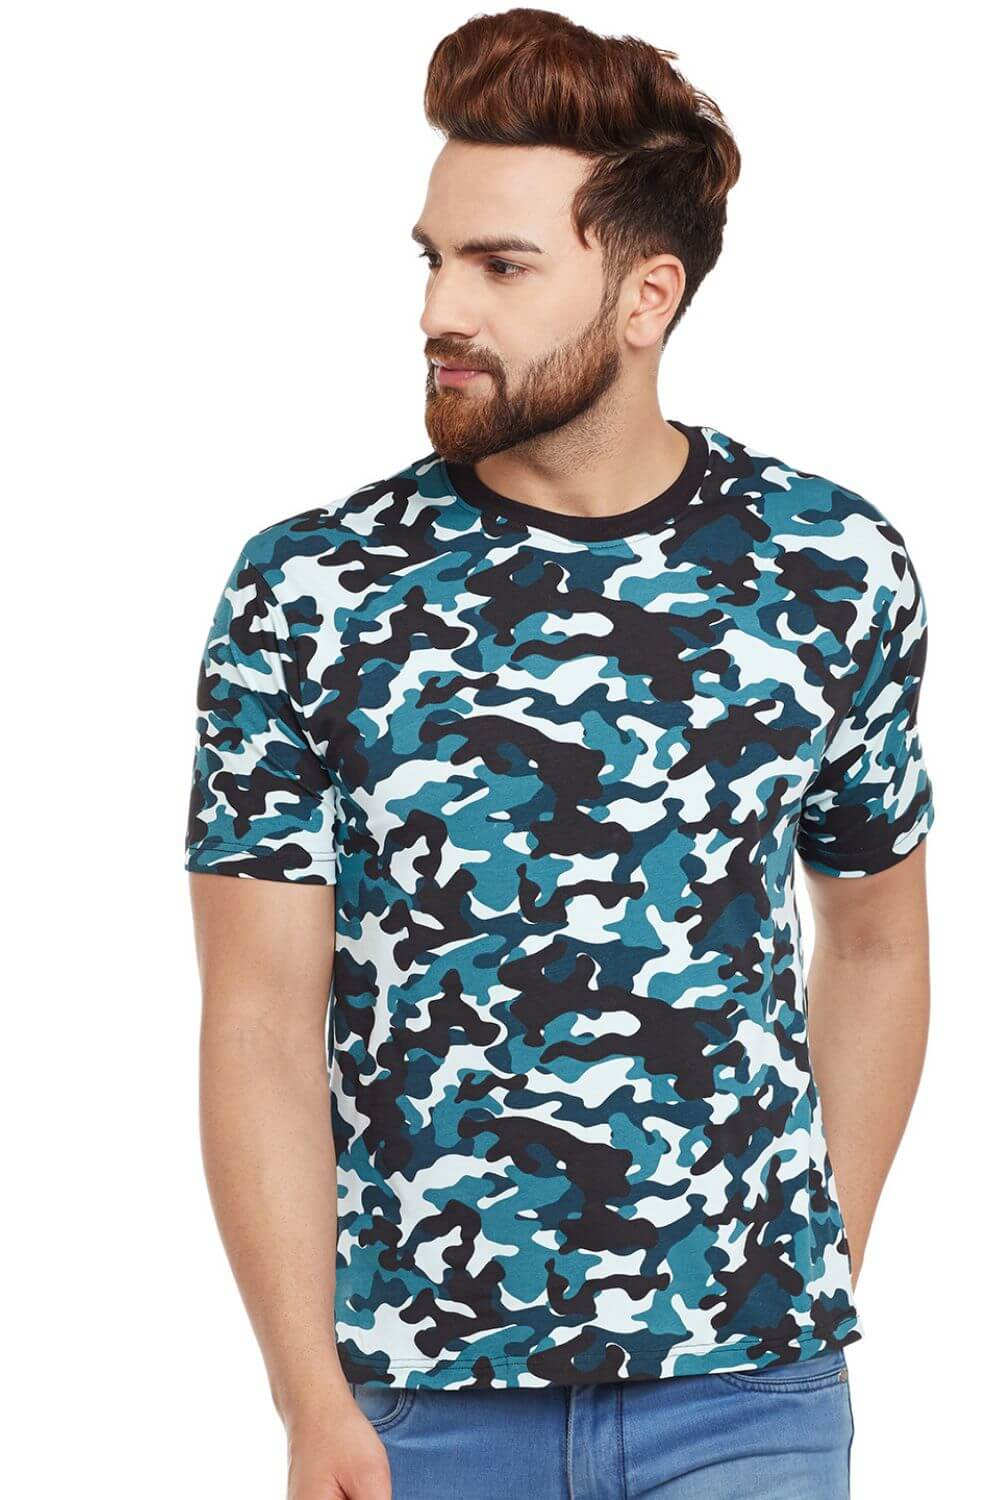 Visavi men camouflage t-shirt - teal & black